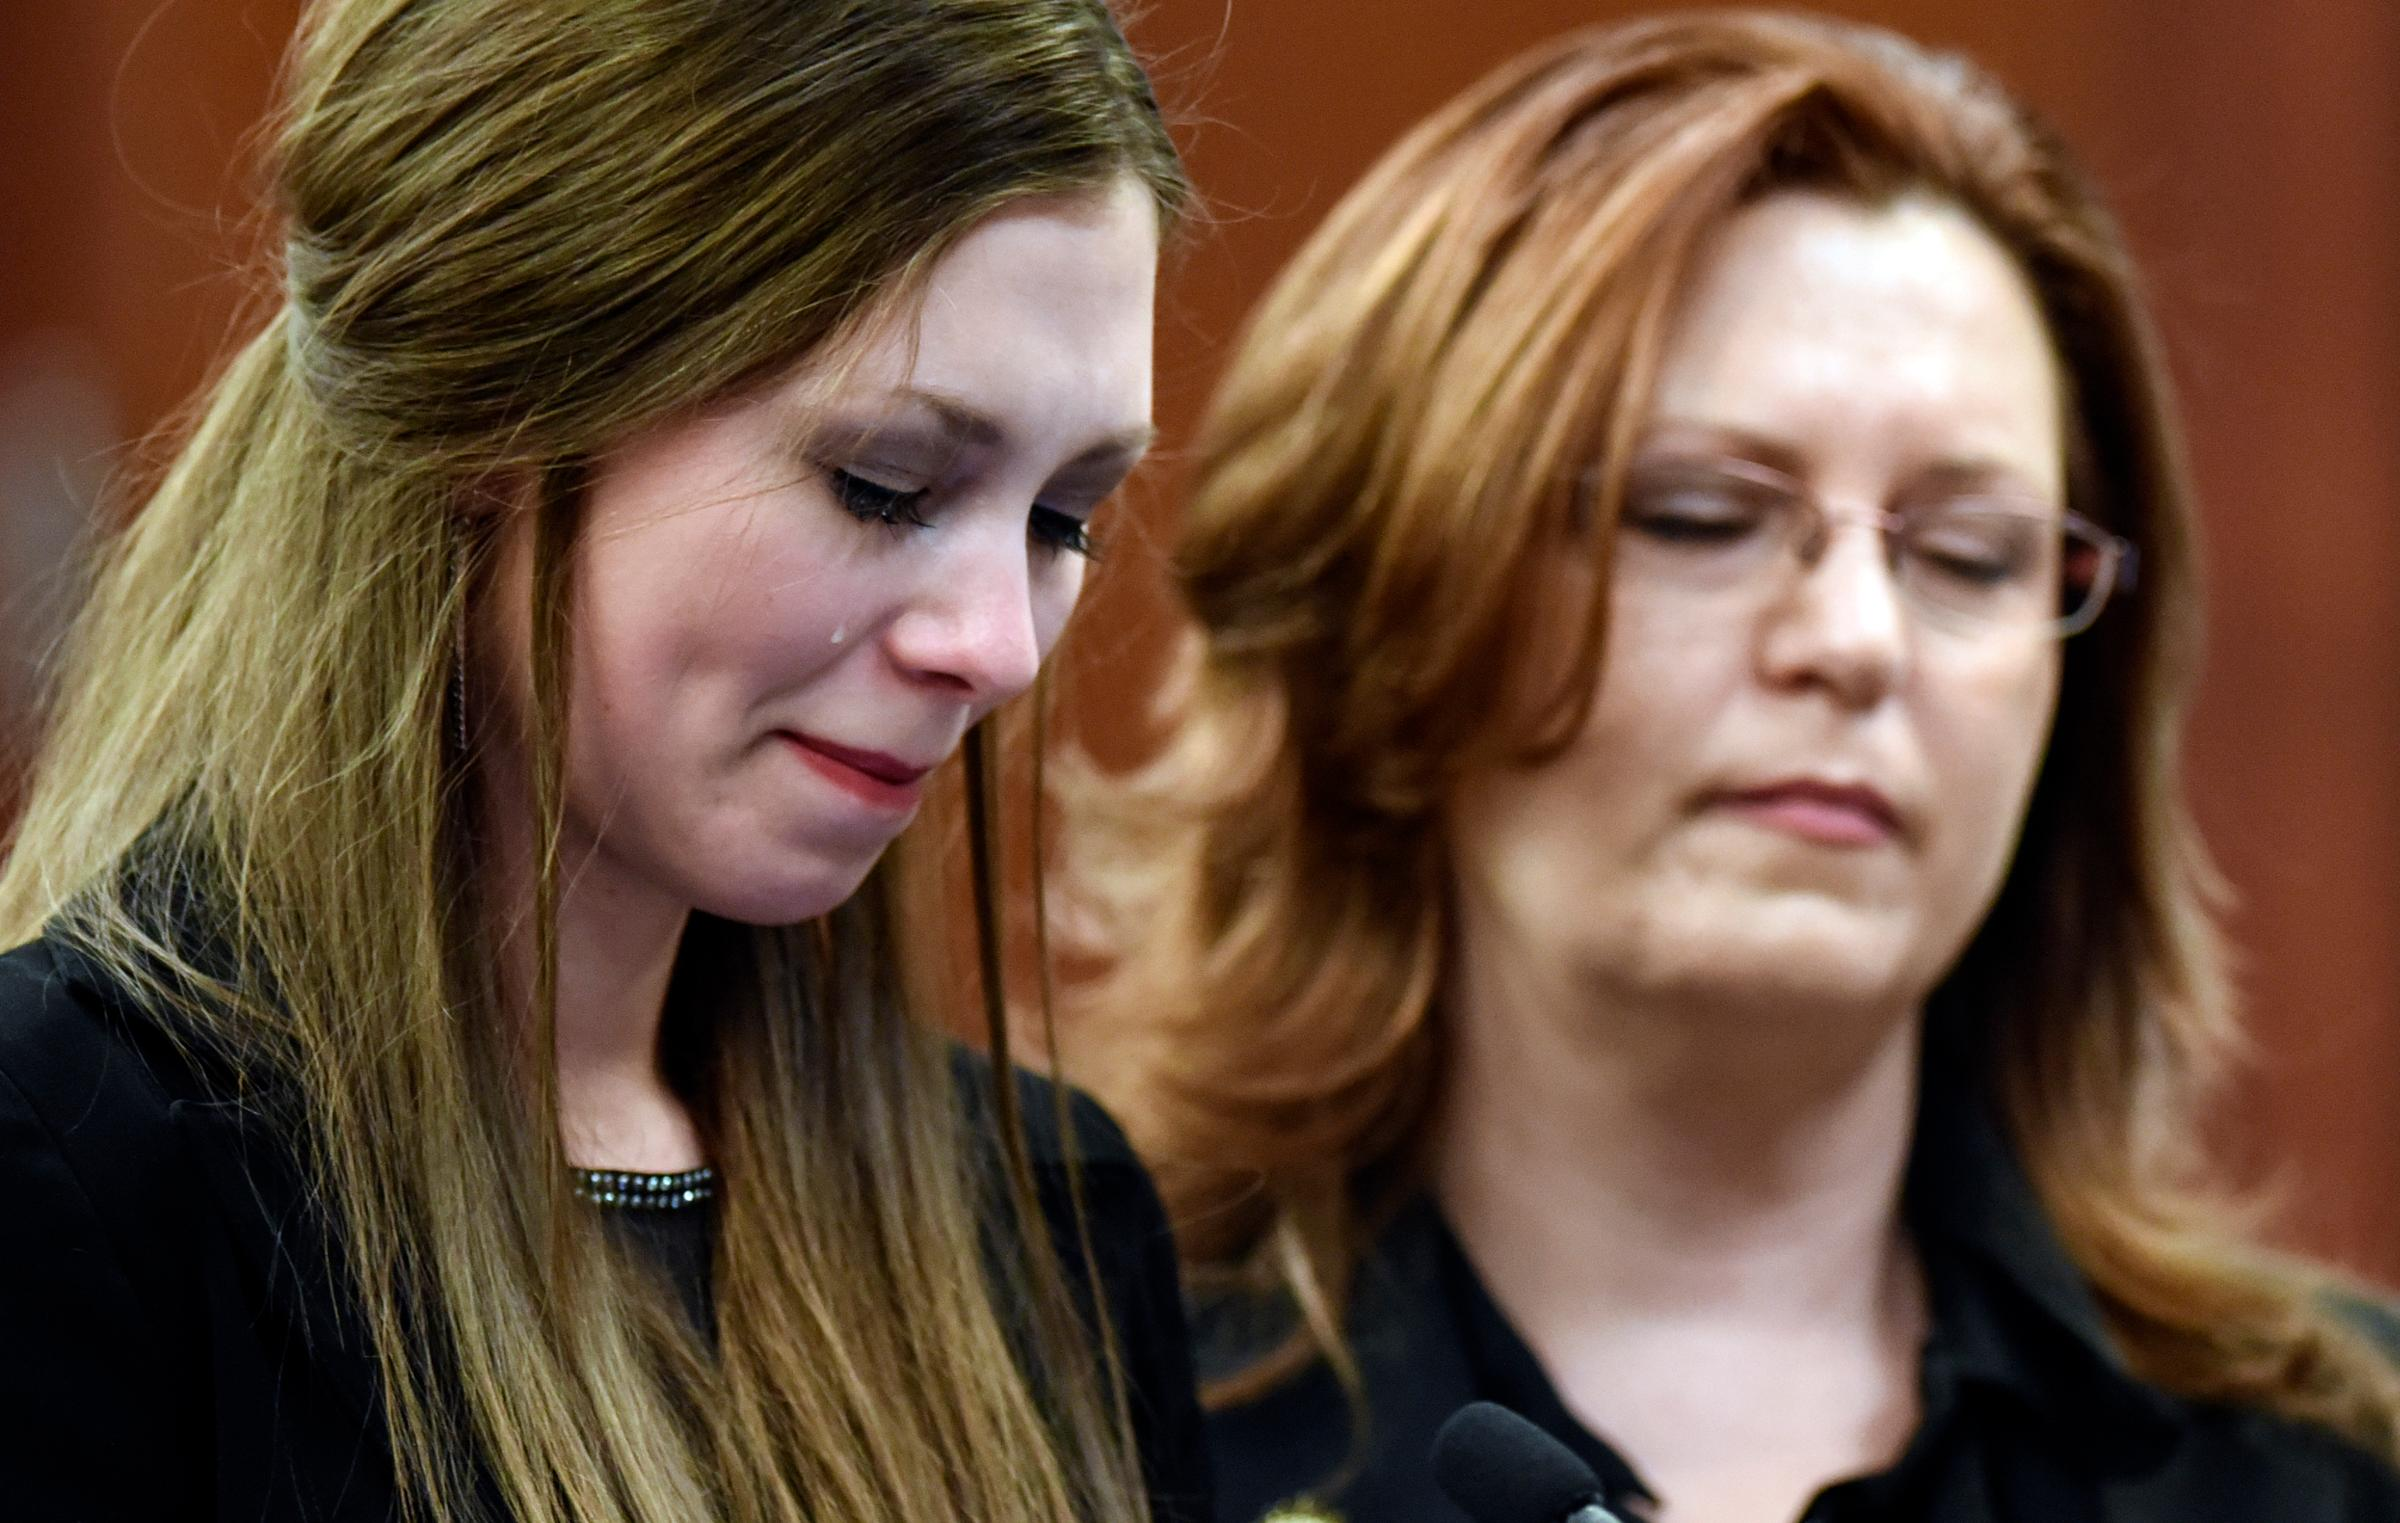 Dancer Jessica Smith, left, reacts while speaking Thursday, Jan. 18, 2018,in Lansing, Mich.,  during the third day of victim impact statements regarding former sports medicine doctor Larry Nassar, who pled guilty to seven counts of sexual assault in Ingham County, and three in Eaton County. Next to her is her mother Kimberly.  (Matthew Dae Smith /Lansing State Journal via AP)